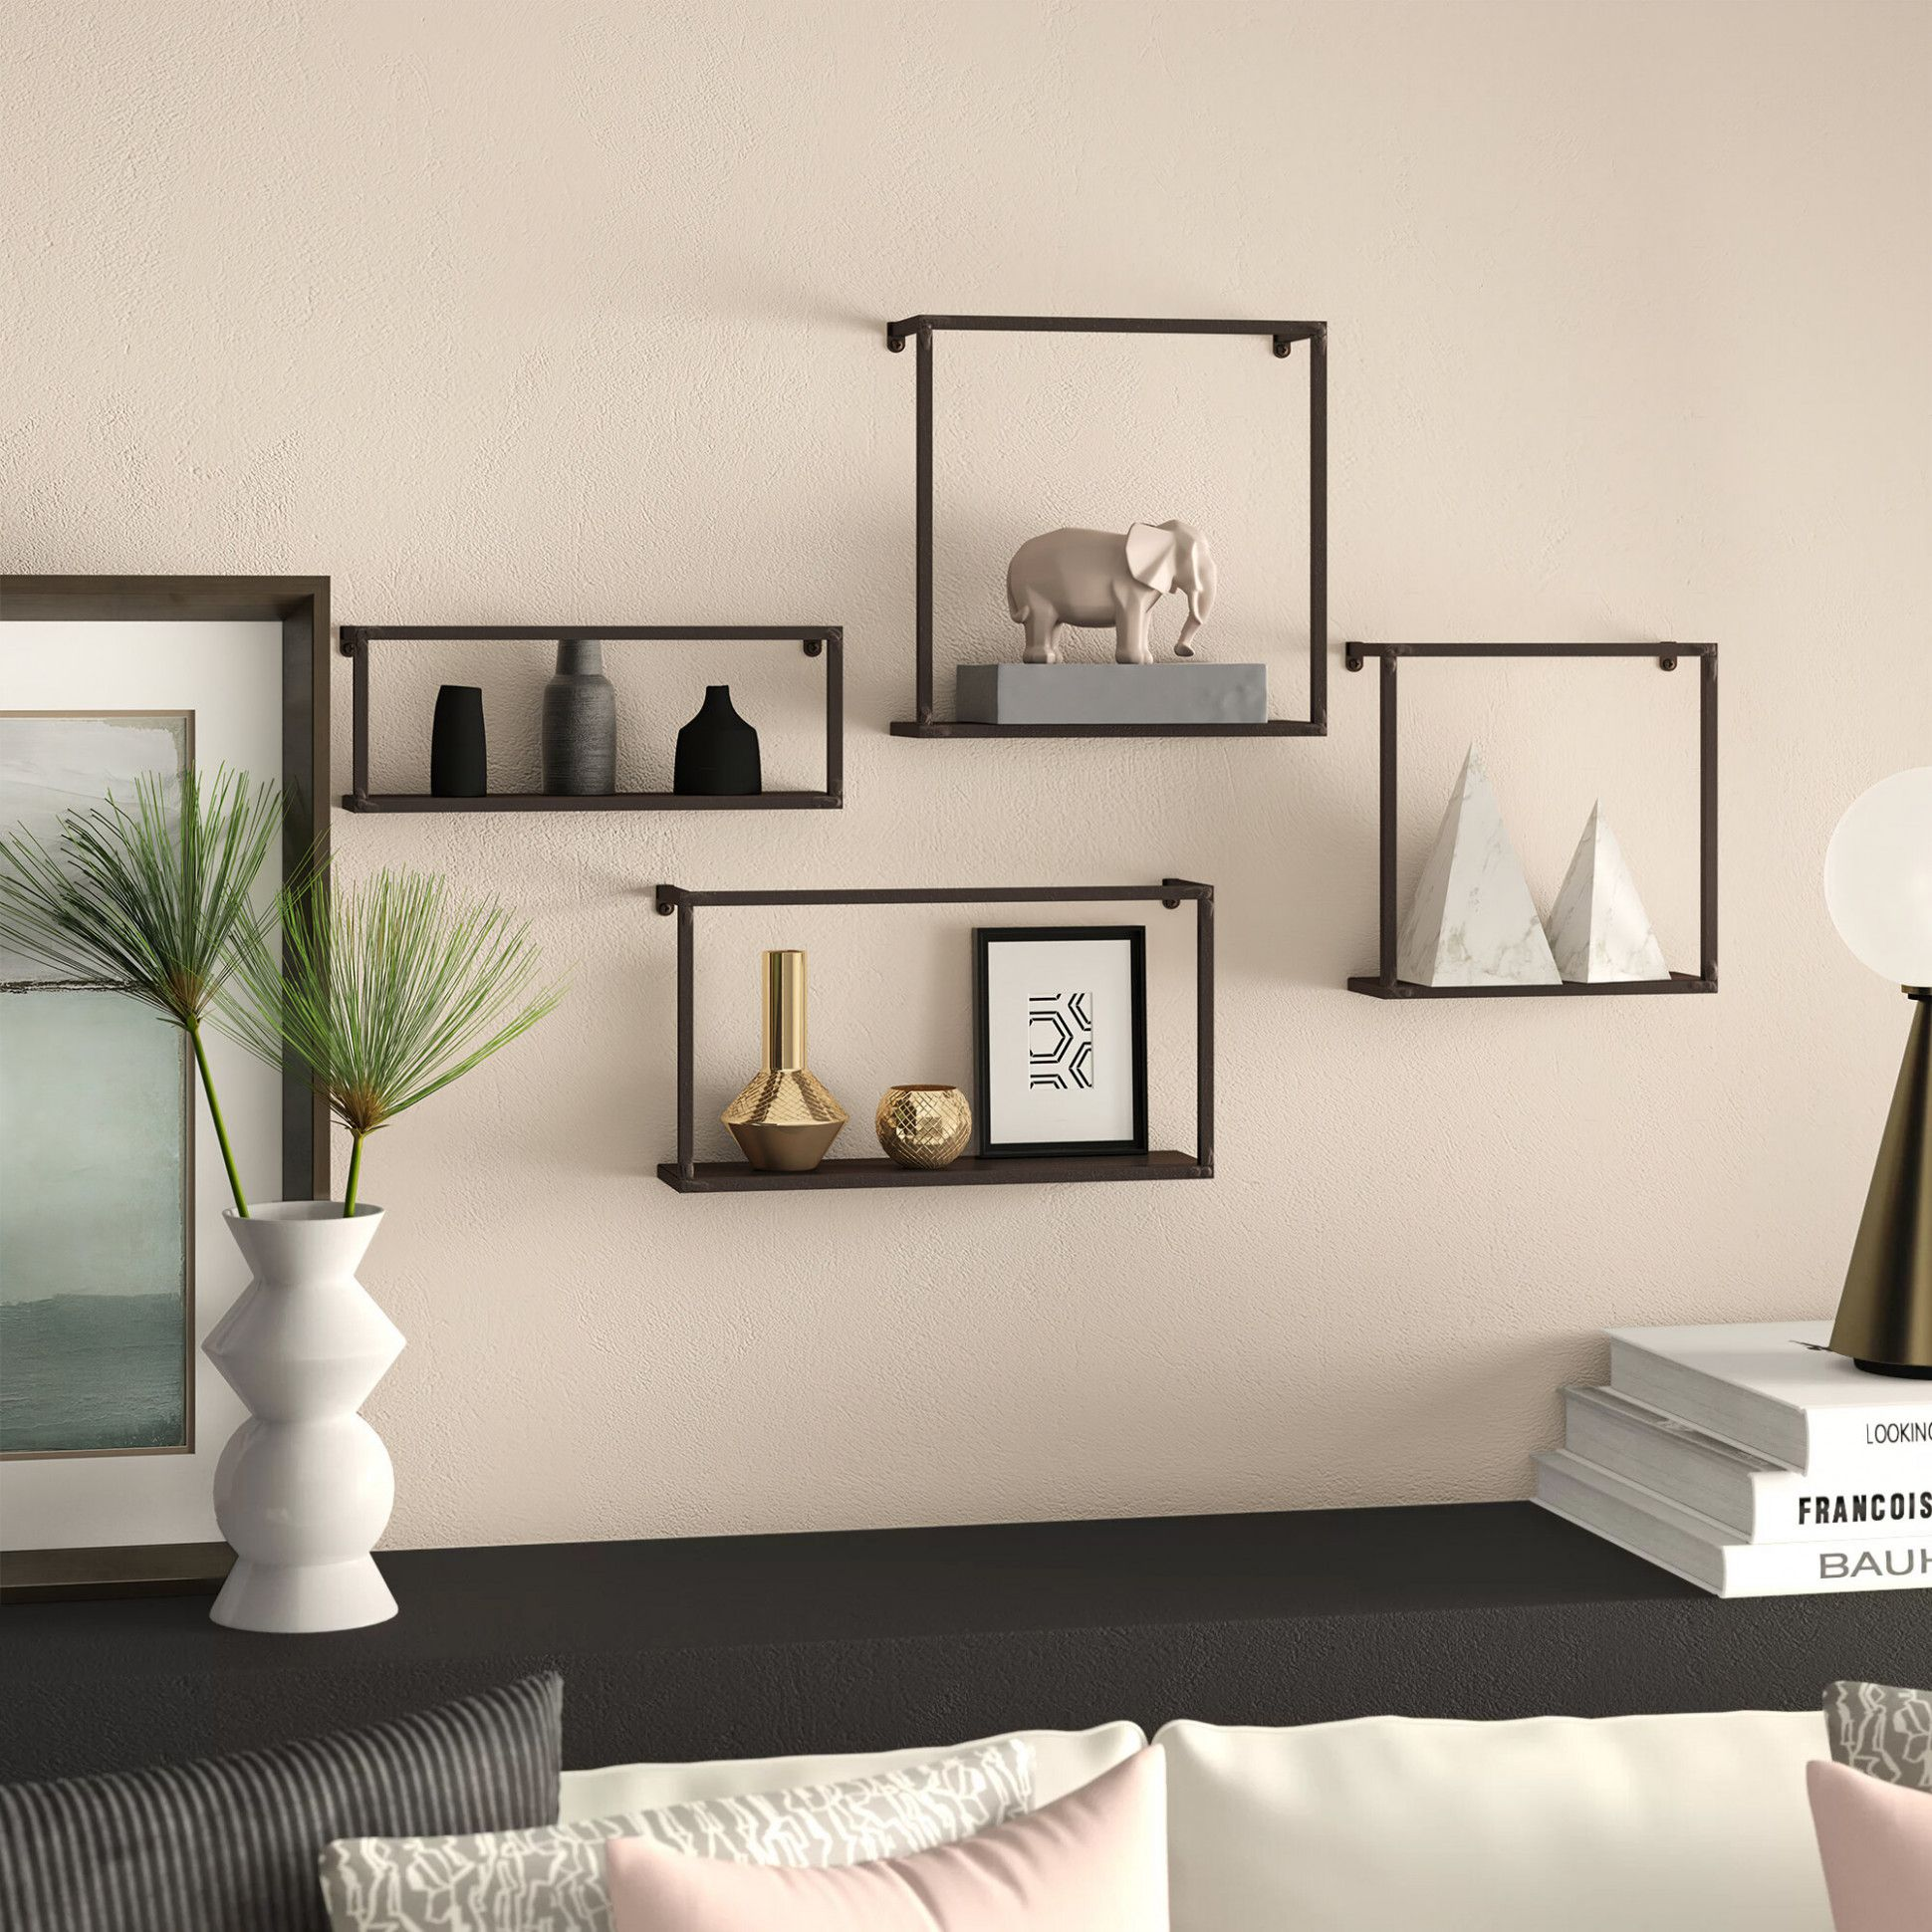 Incredible Wall Pieces For Living Wall Shelves Decor Frames On Wall